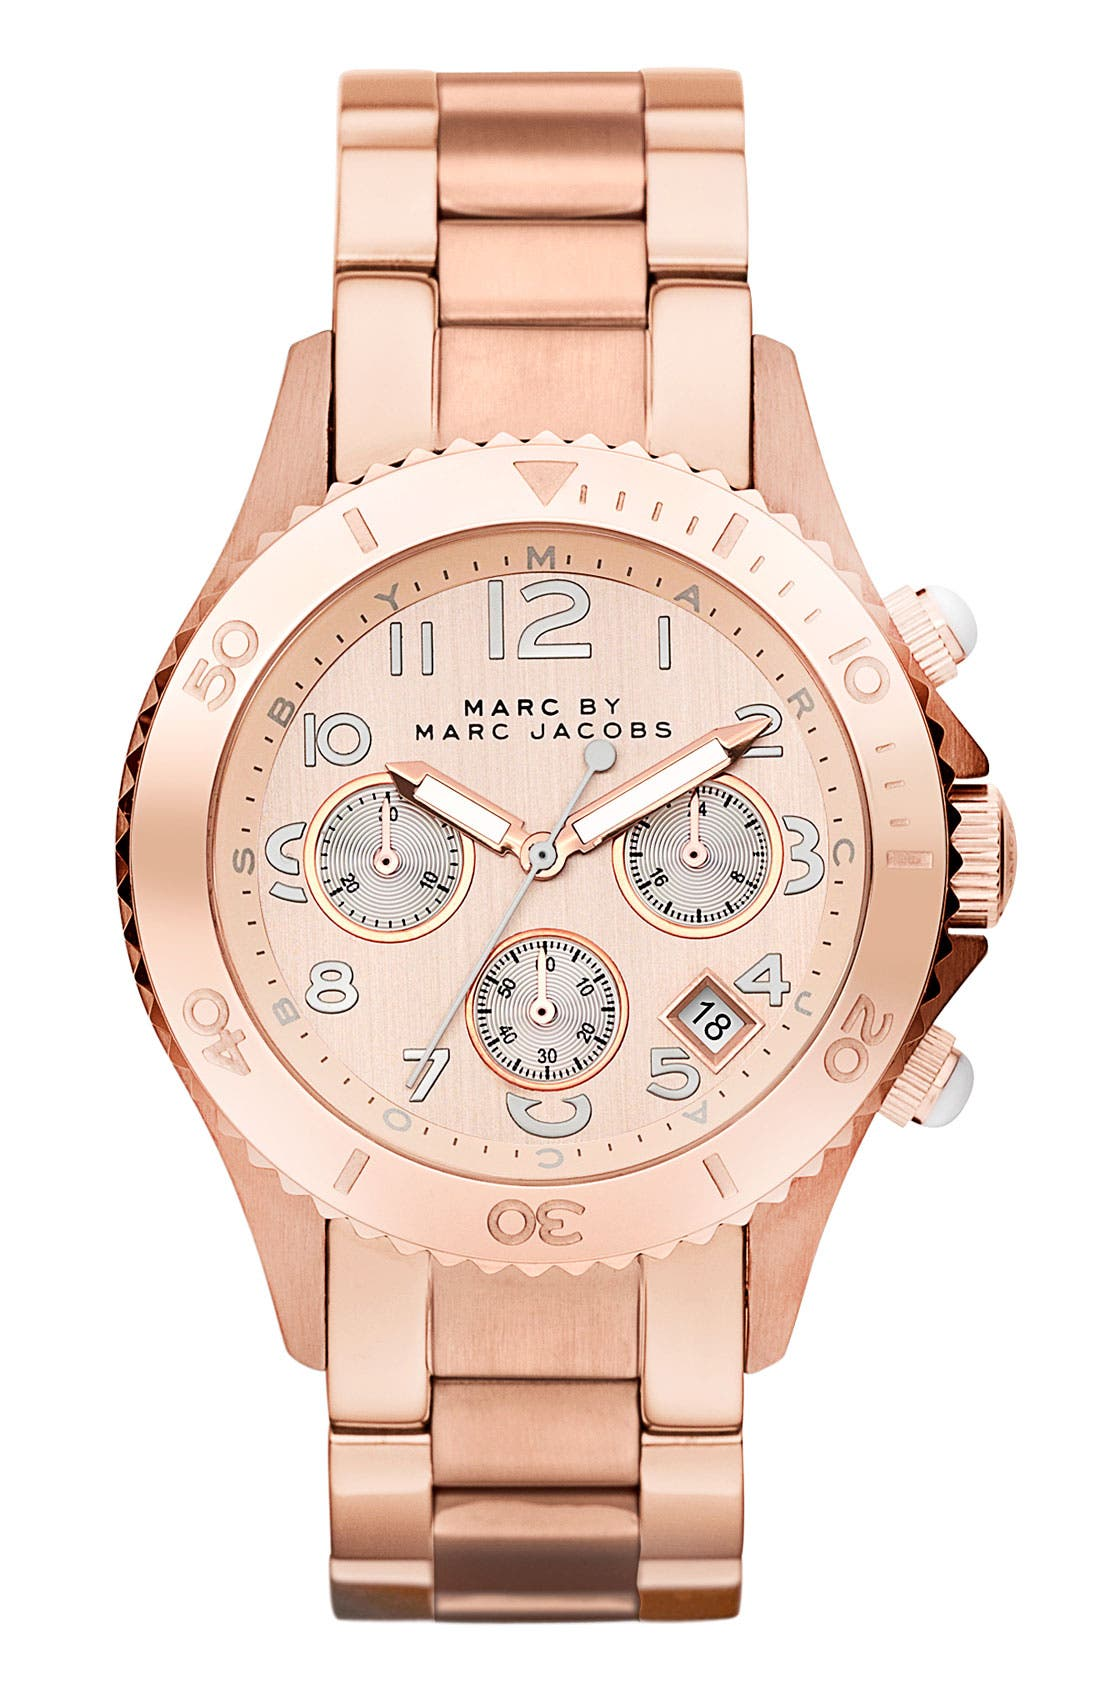 Main Image - MARC JACOBS 'Rock' Chronograph Bracelet Watch, 40mm